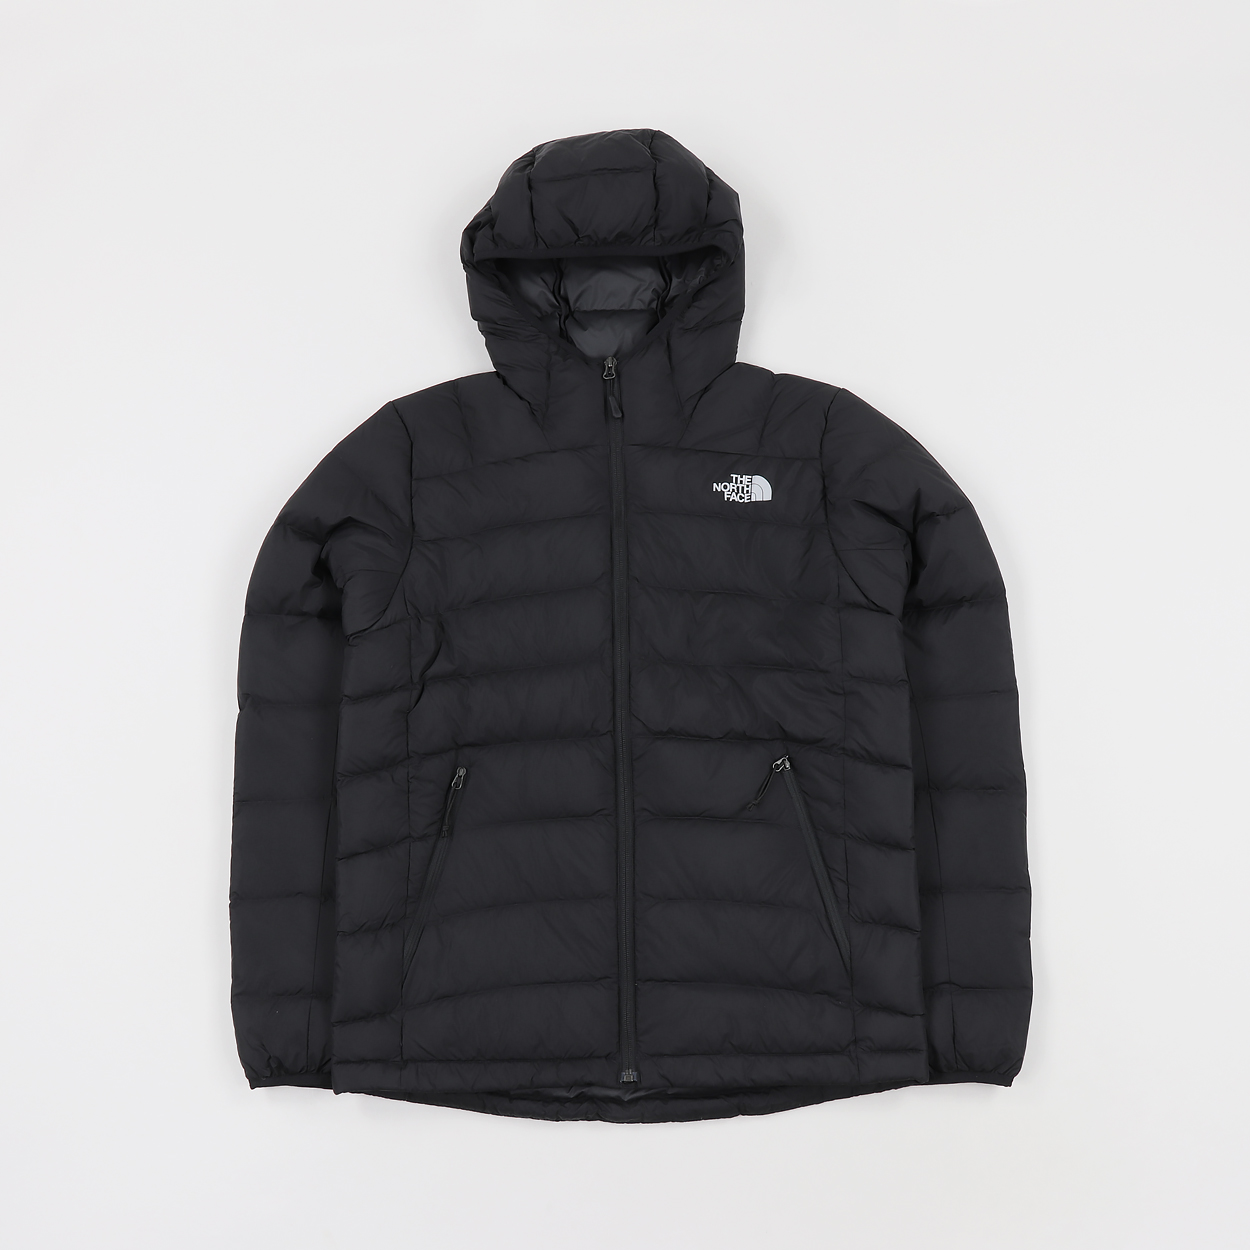 The North Face Outdoor La Paz Insulated Hooded Down Jacket Black £118.00 157a5aa5e